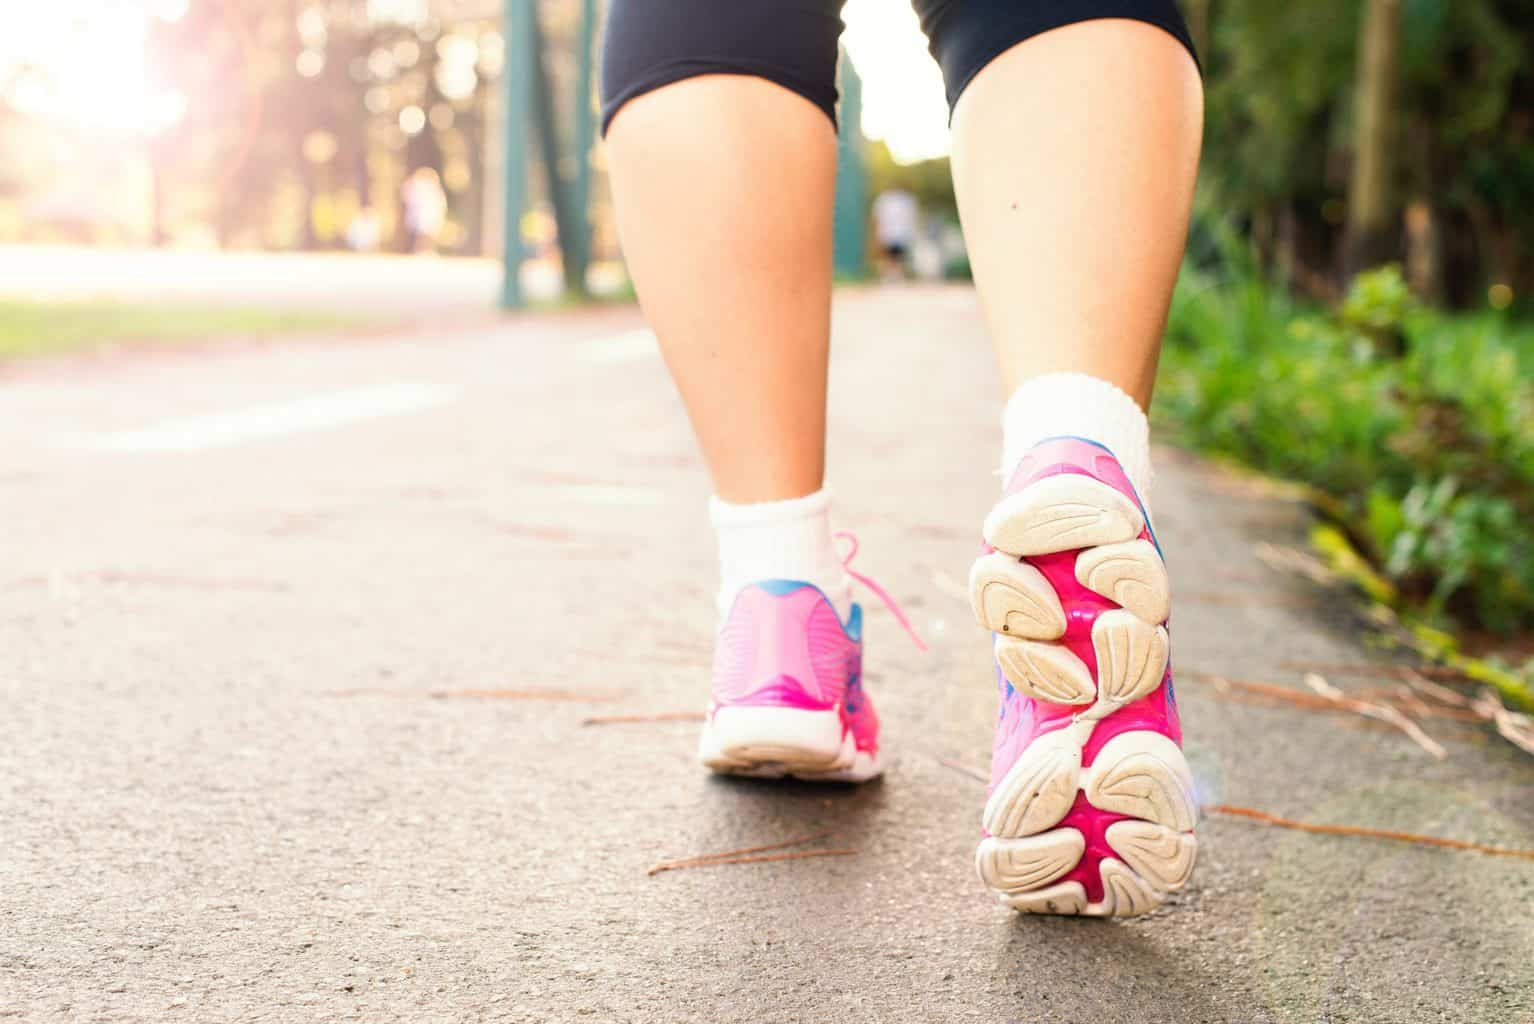 Micro-Habits to Reduce Stress: Get Moving